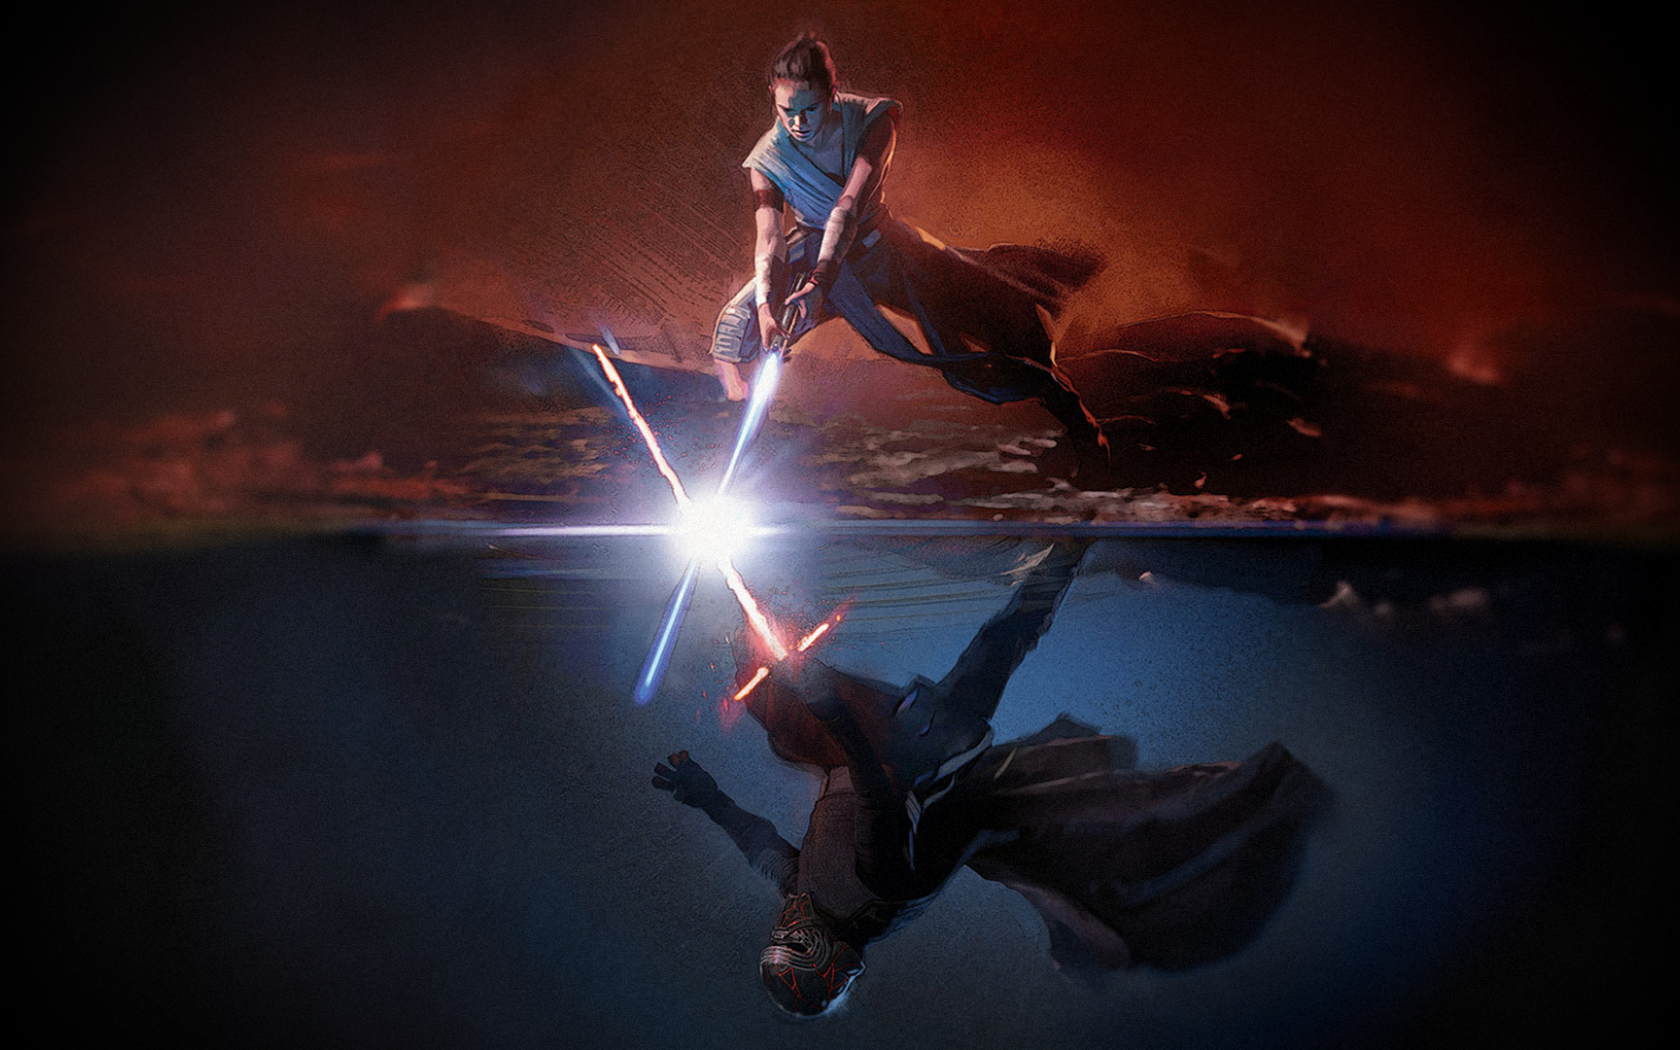 Free Download The Rise Of Skywalker Wallpaper Created Using Newly Released 1920x1080 For Your Desktop Mobile Tablet Explore 48 Mustafar Wallpaper Mustafar Wallpaper